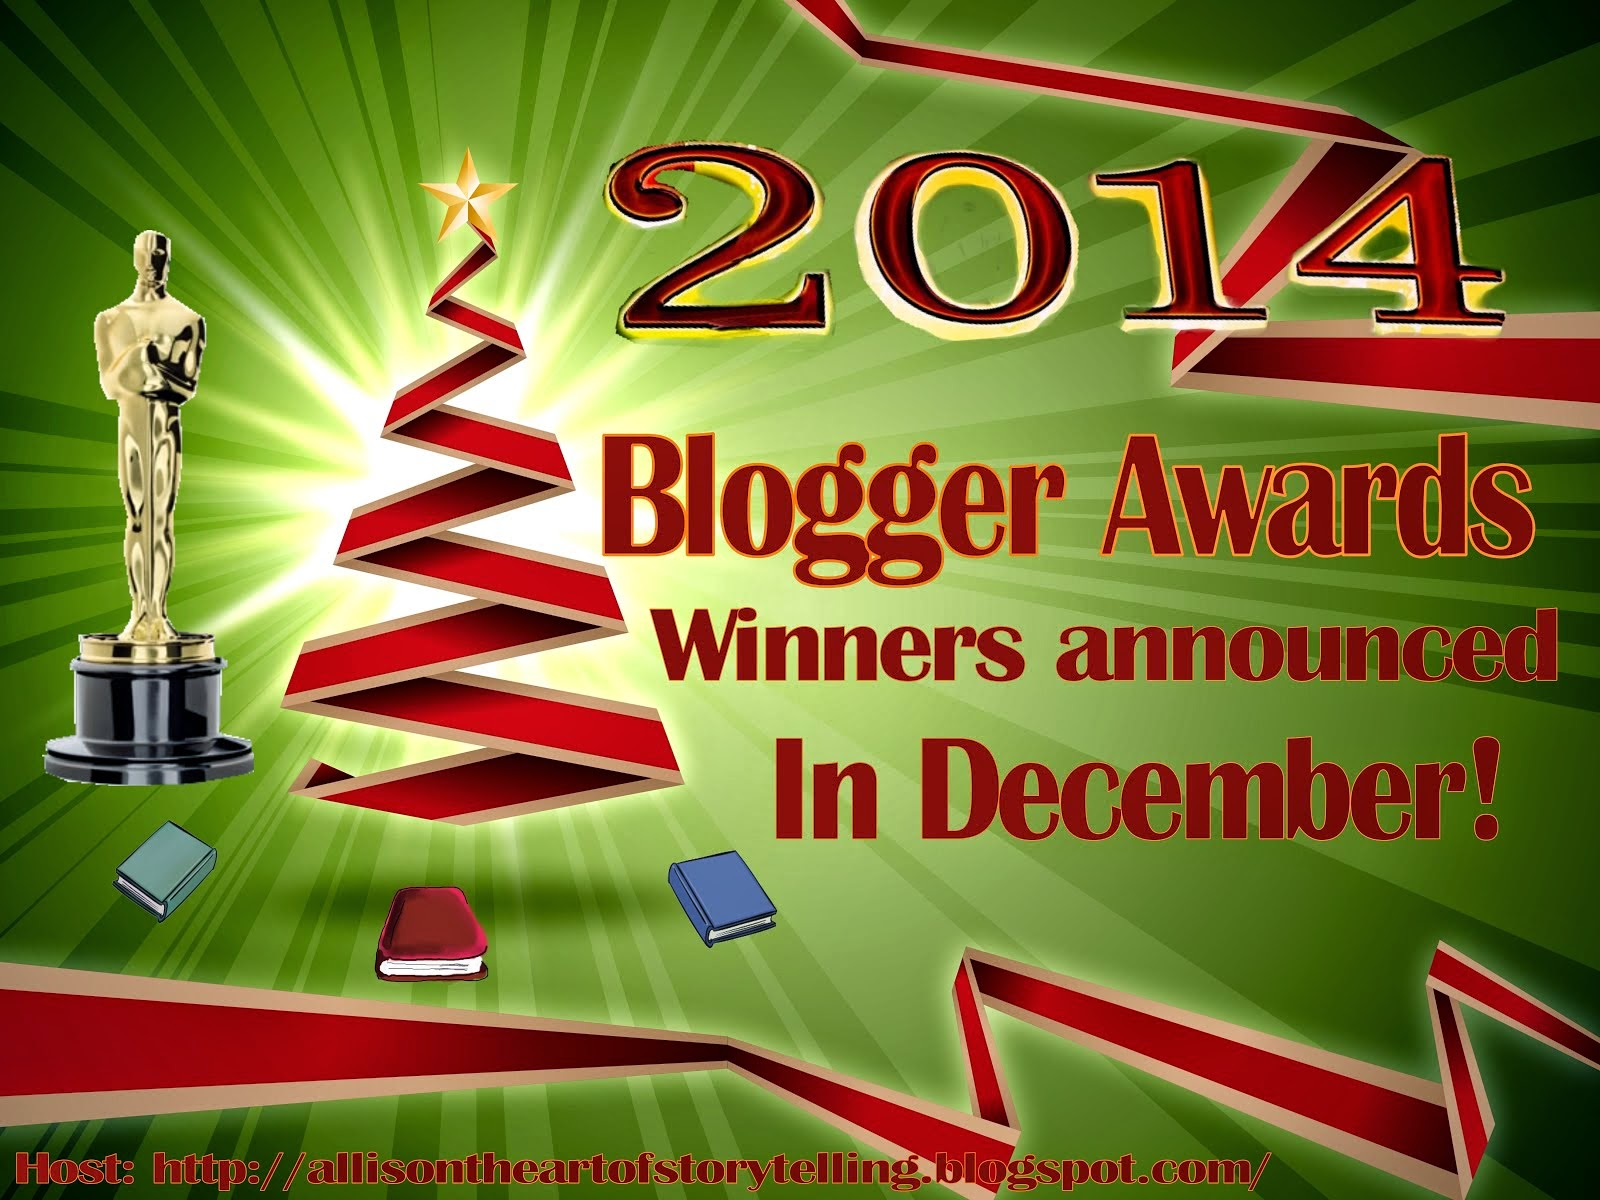 The 2014 Blogger Awards